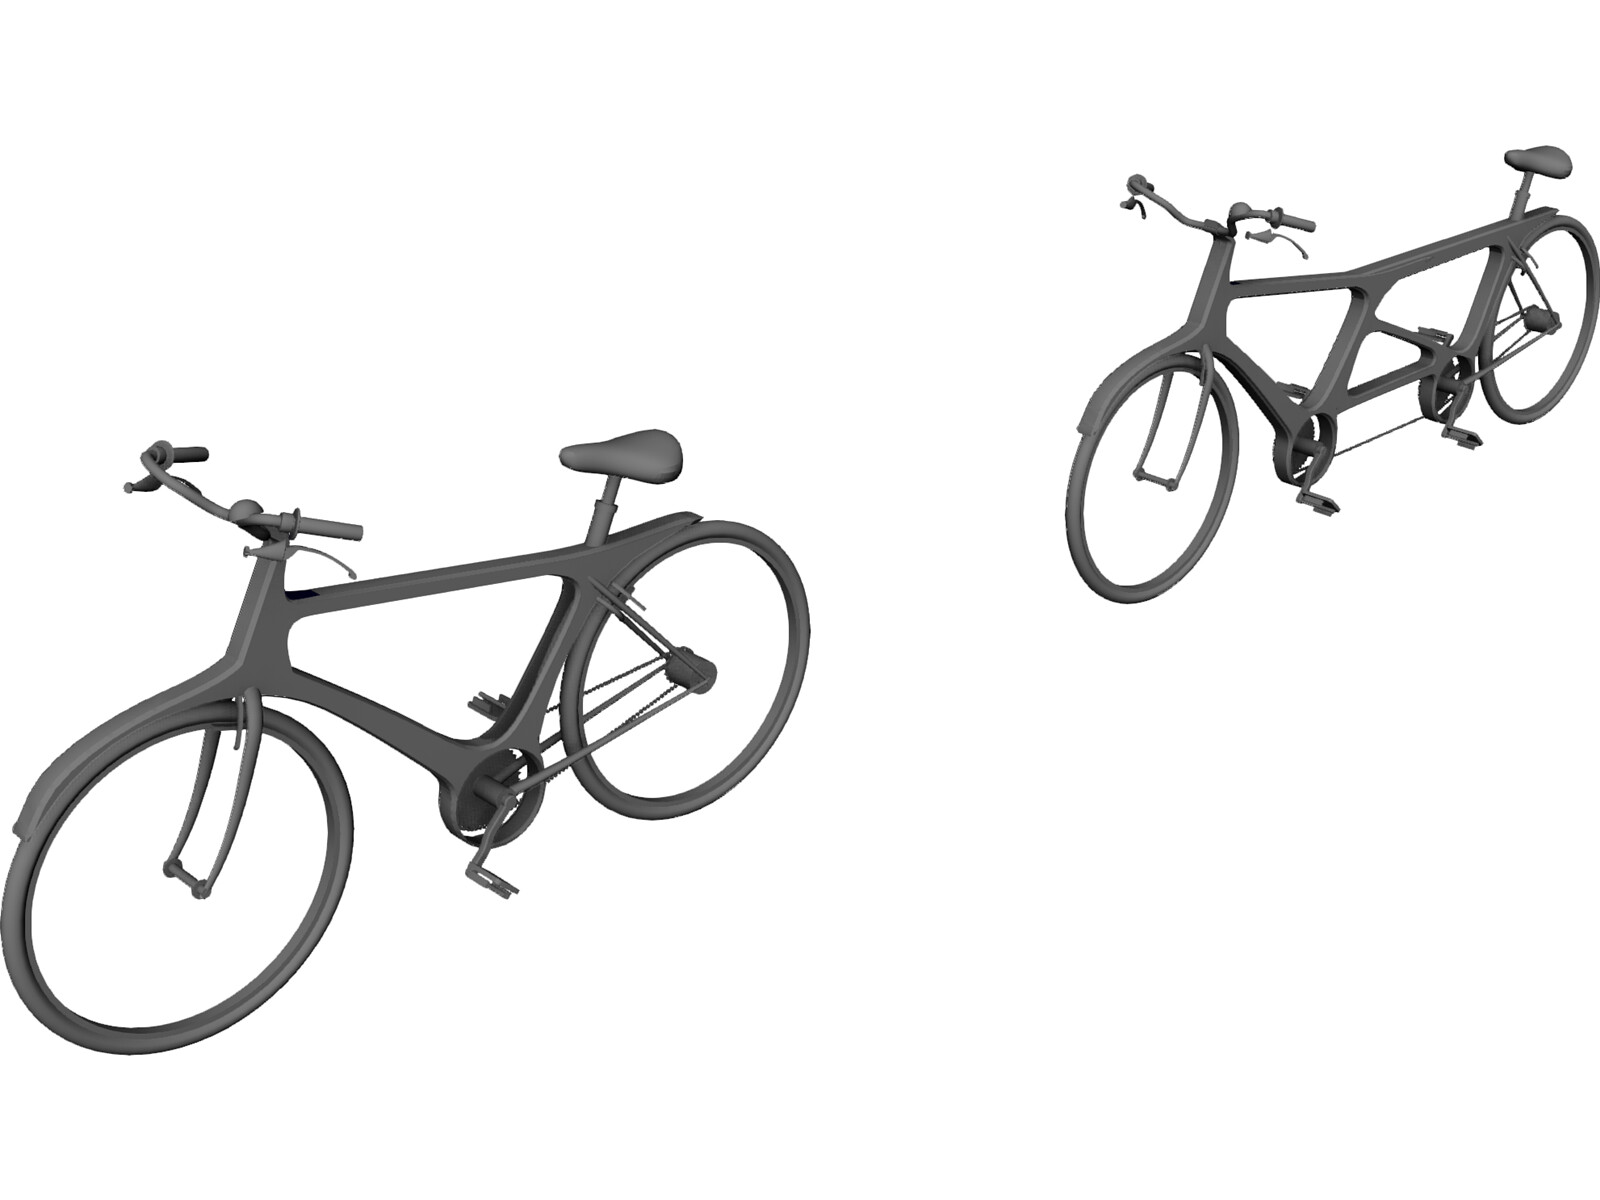 Modern Single and Tandem Bicycles